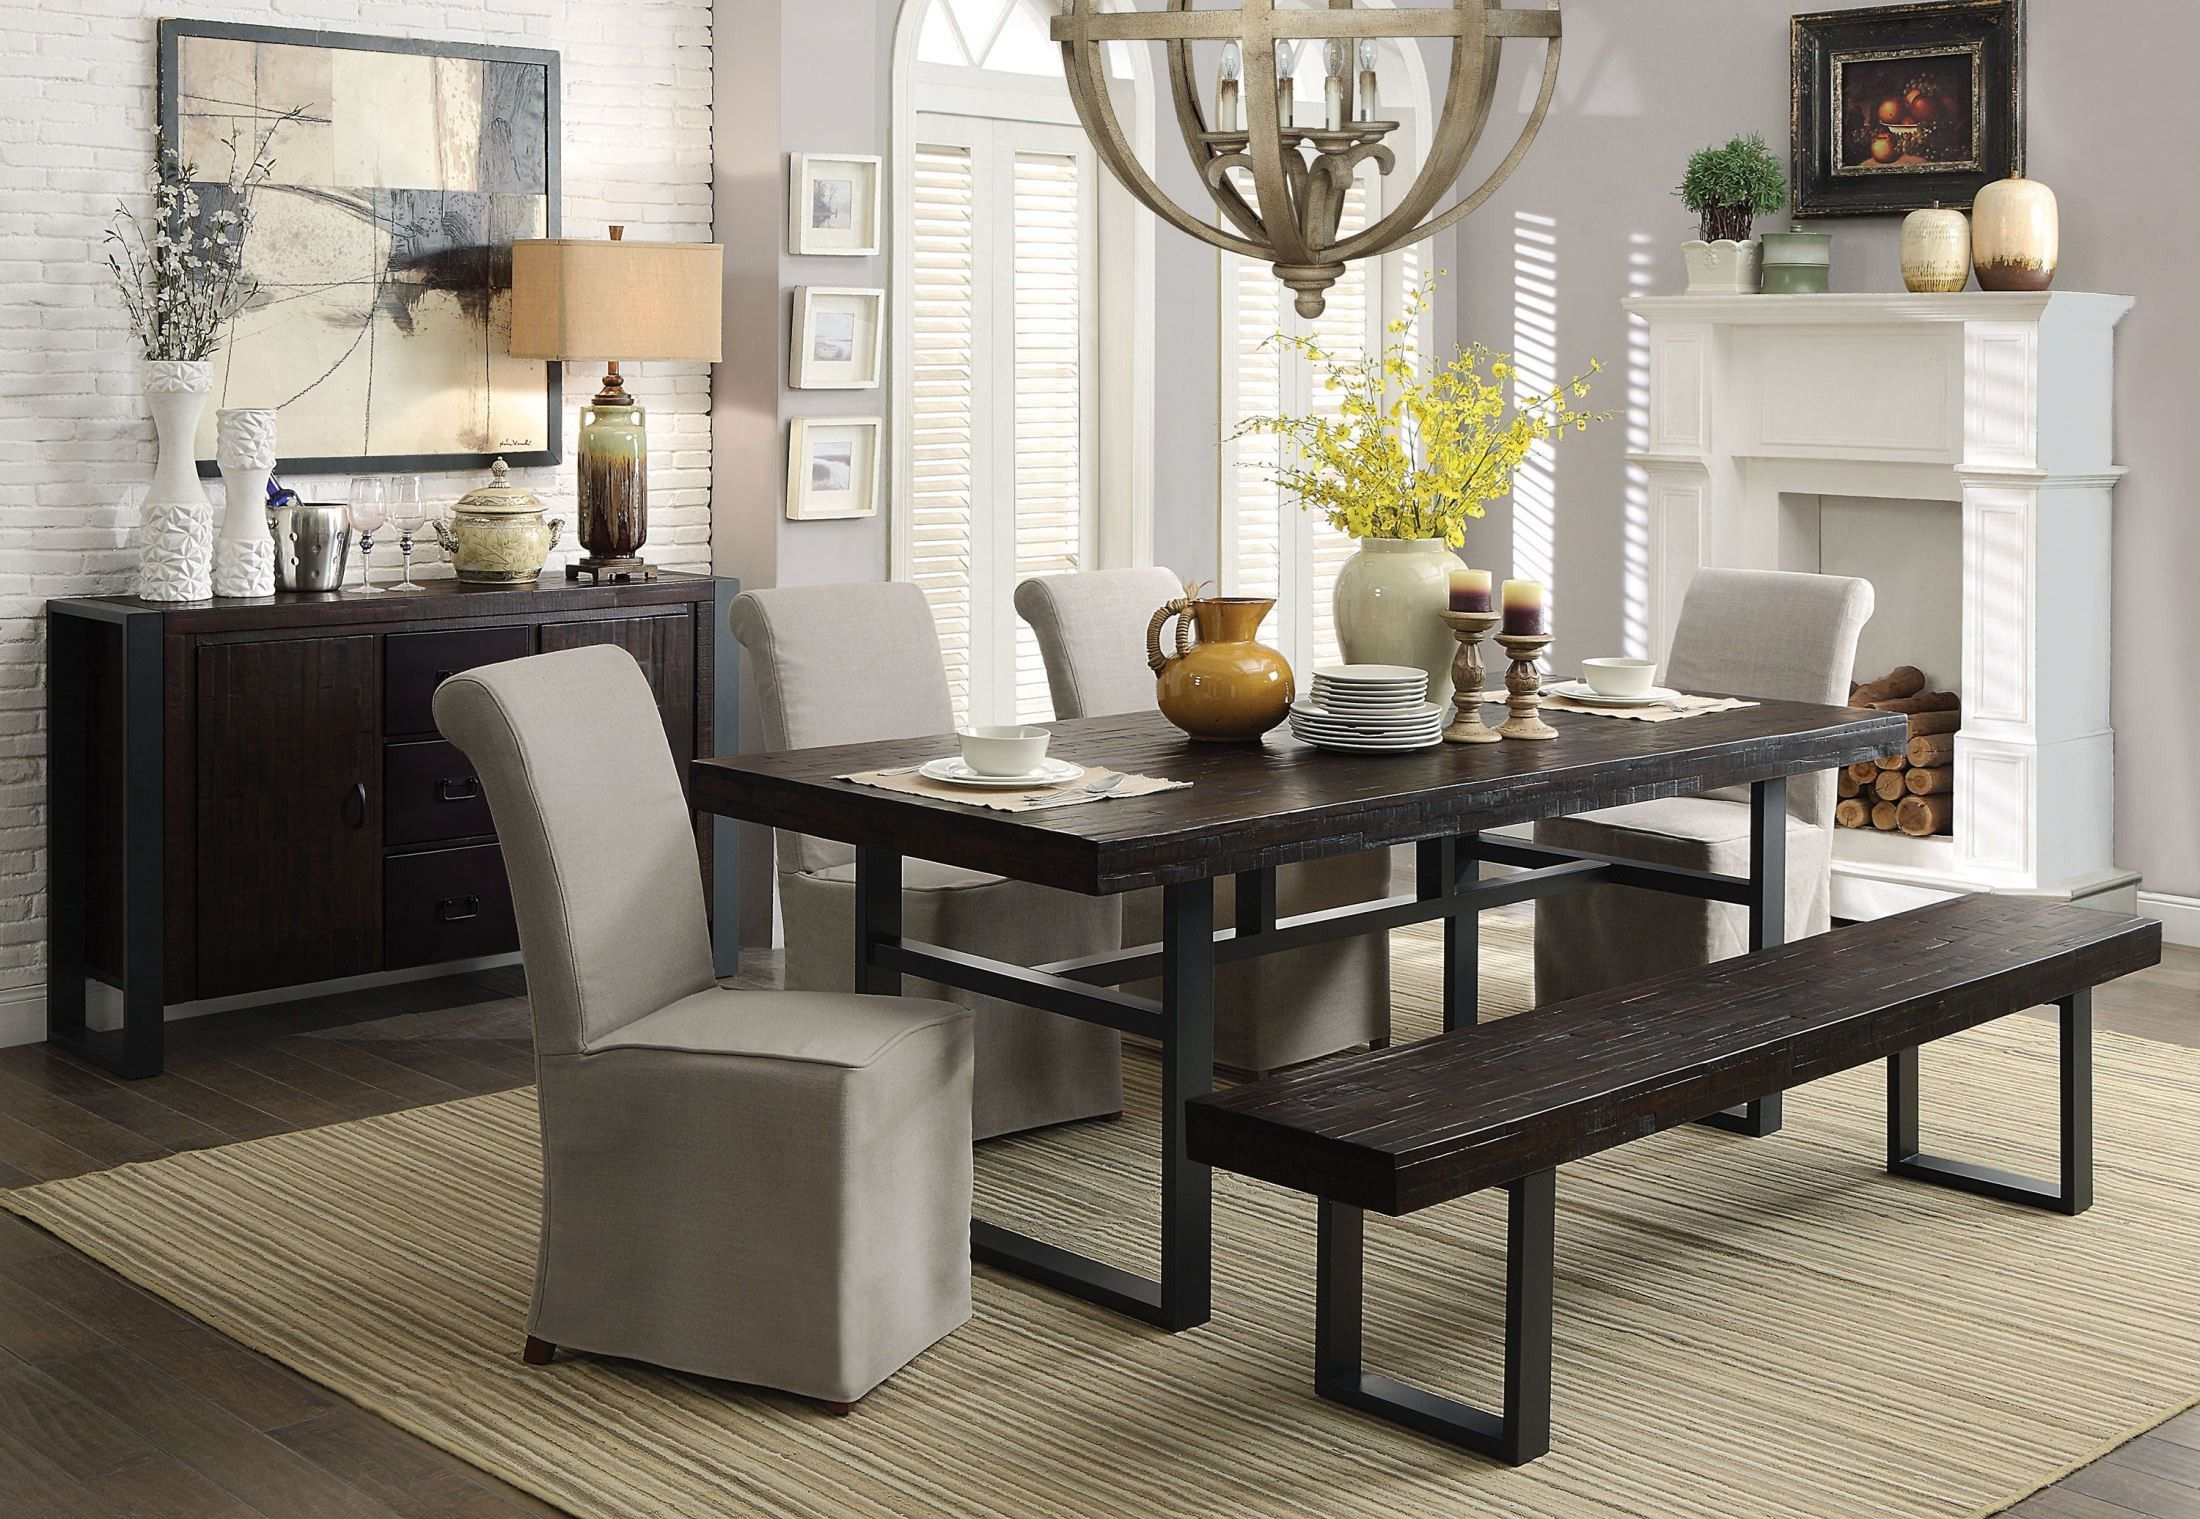 Keller Reclaimed Wood Dining Room Set Reclaimed Wood Dining